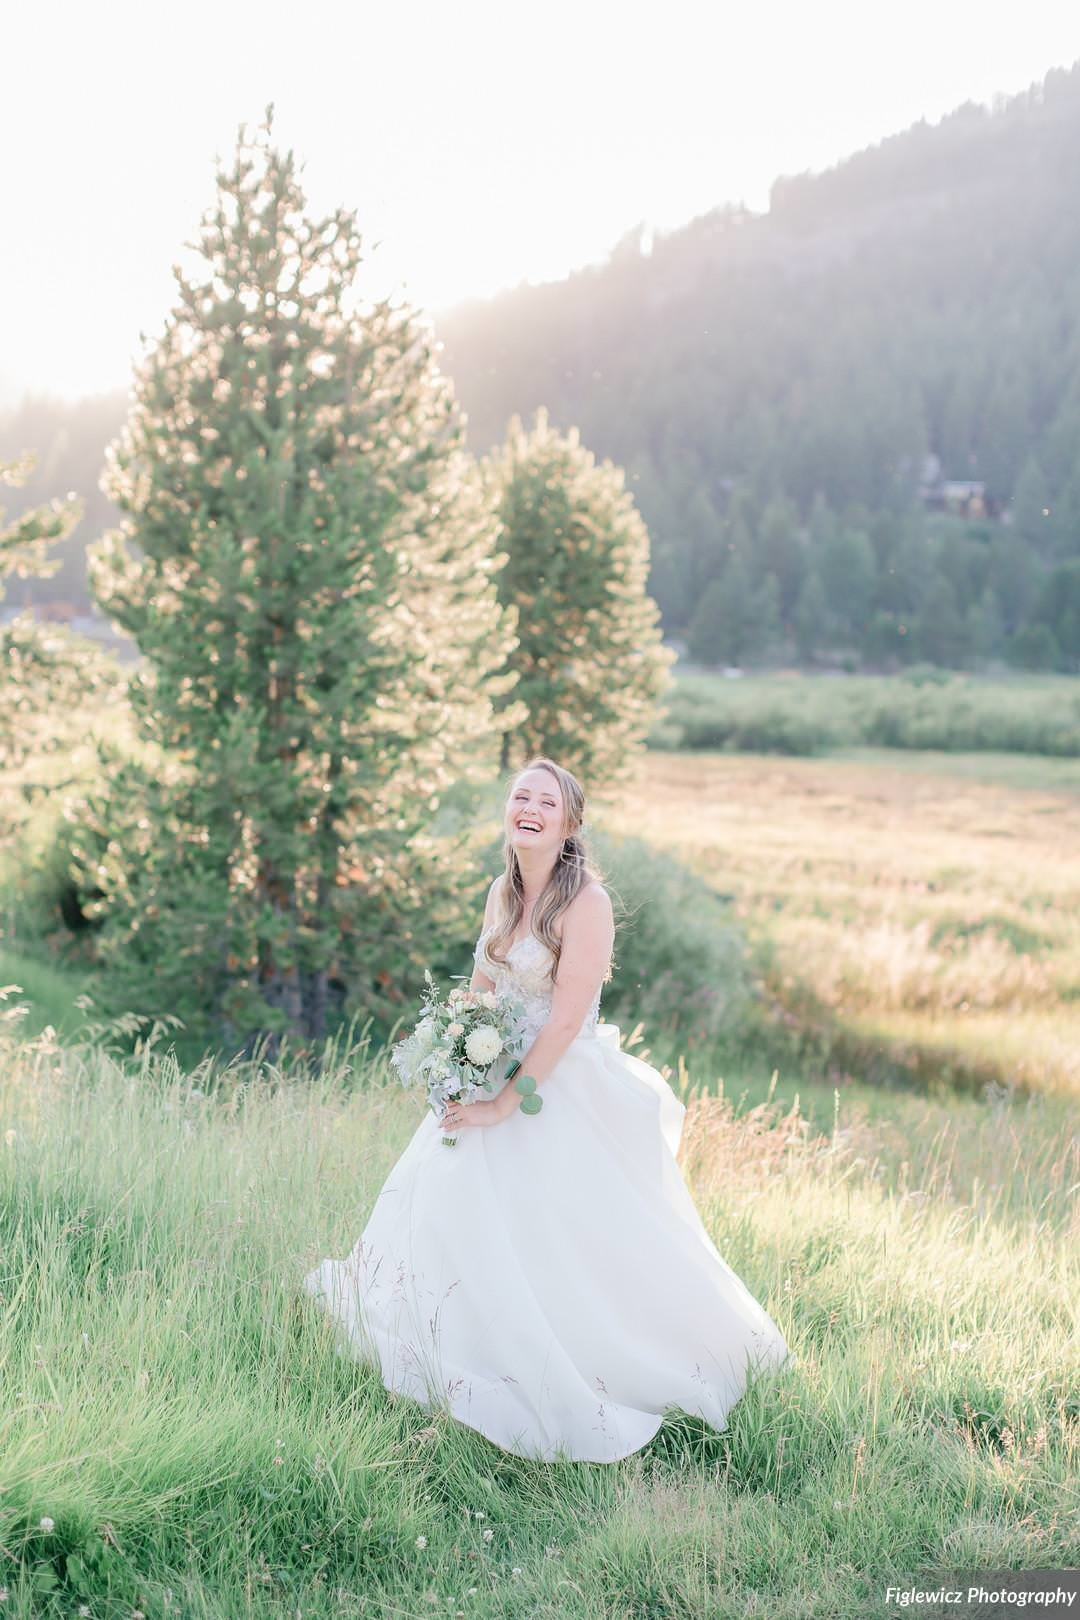 Garden_Tinsley_FiglewiczPhotography_LakeTahoeWeddingSquawValleyCreekTaylorBrendan00136_big